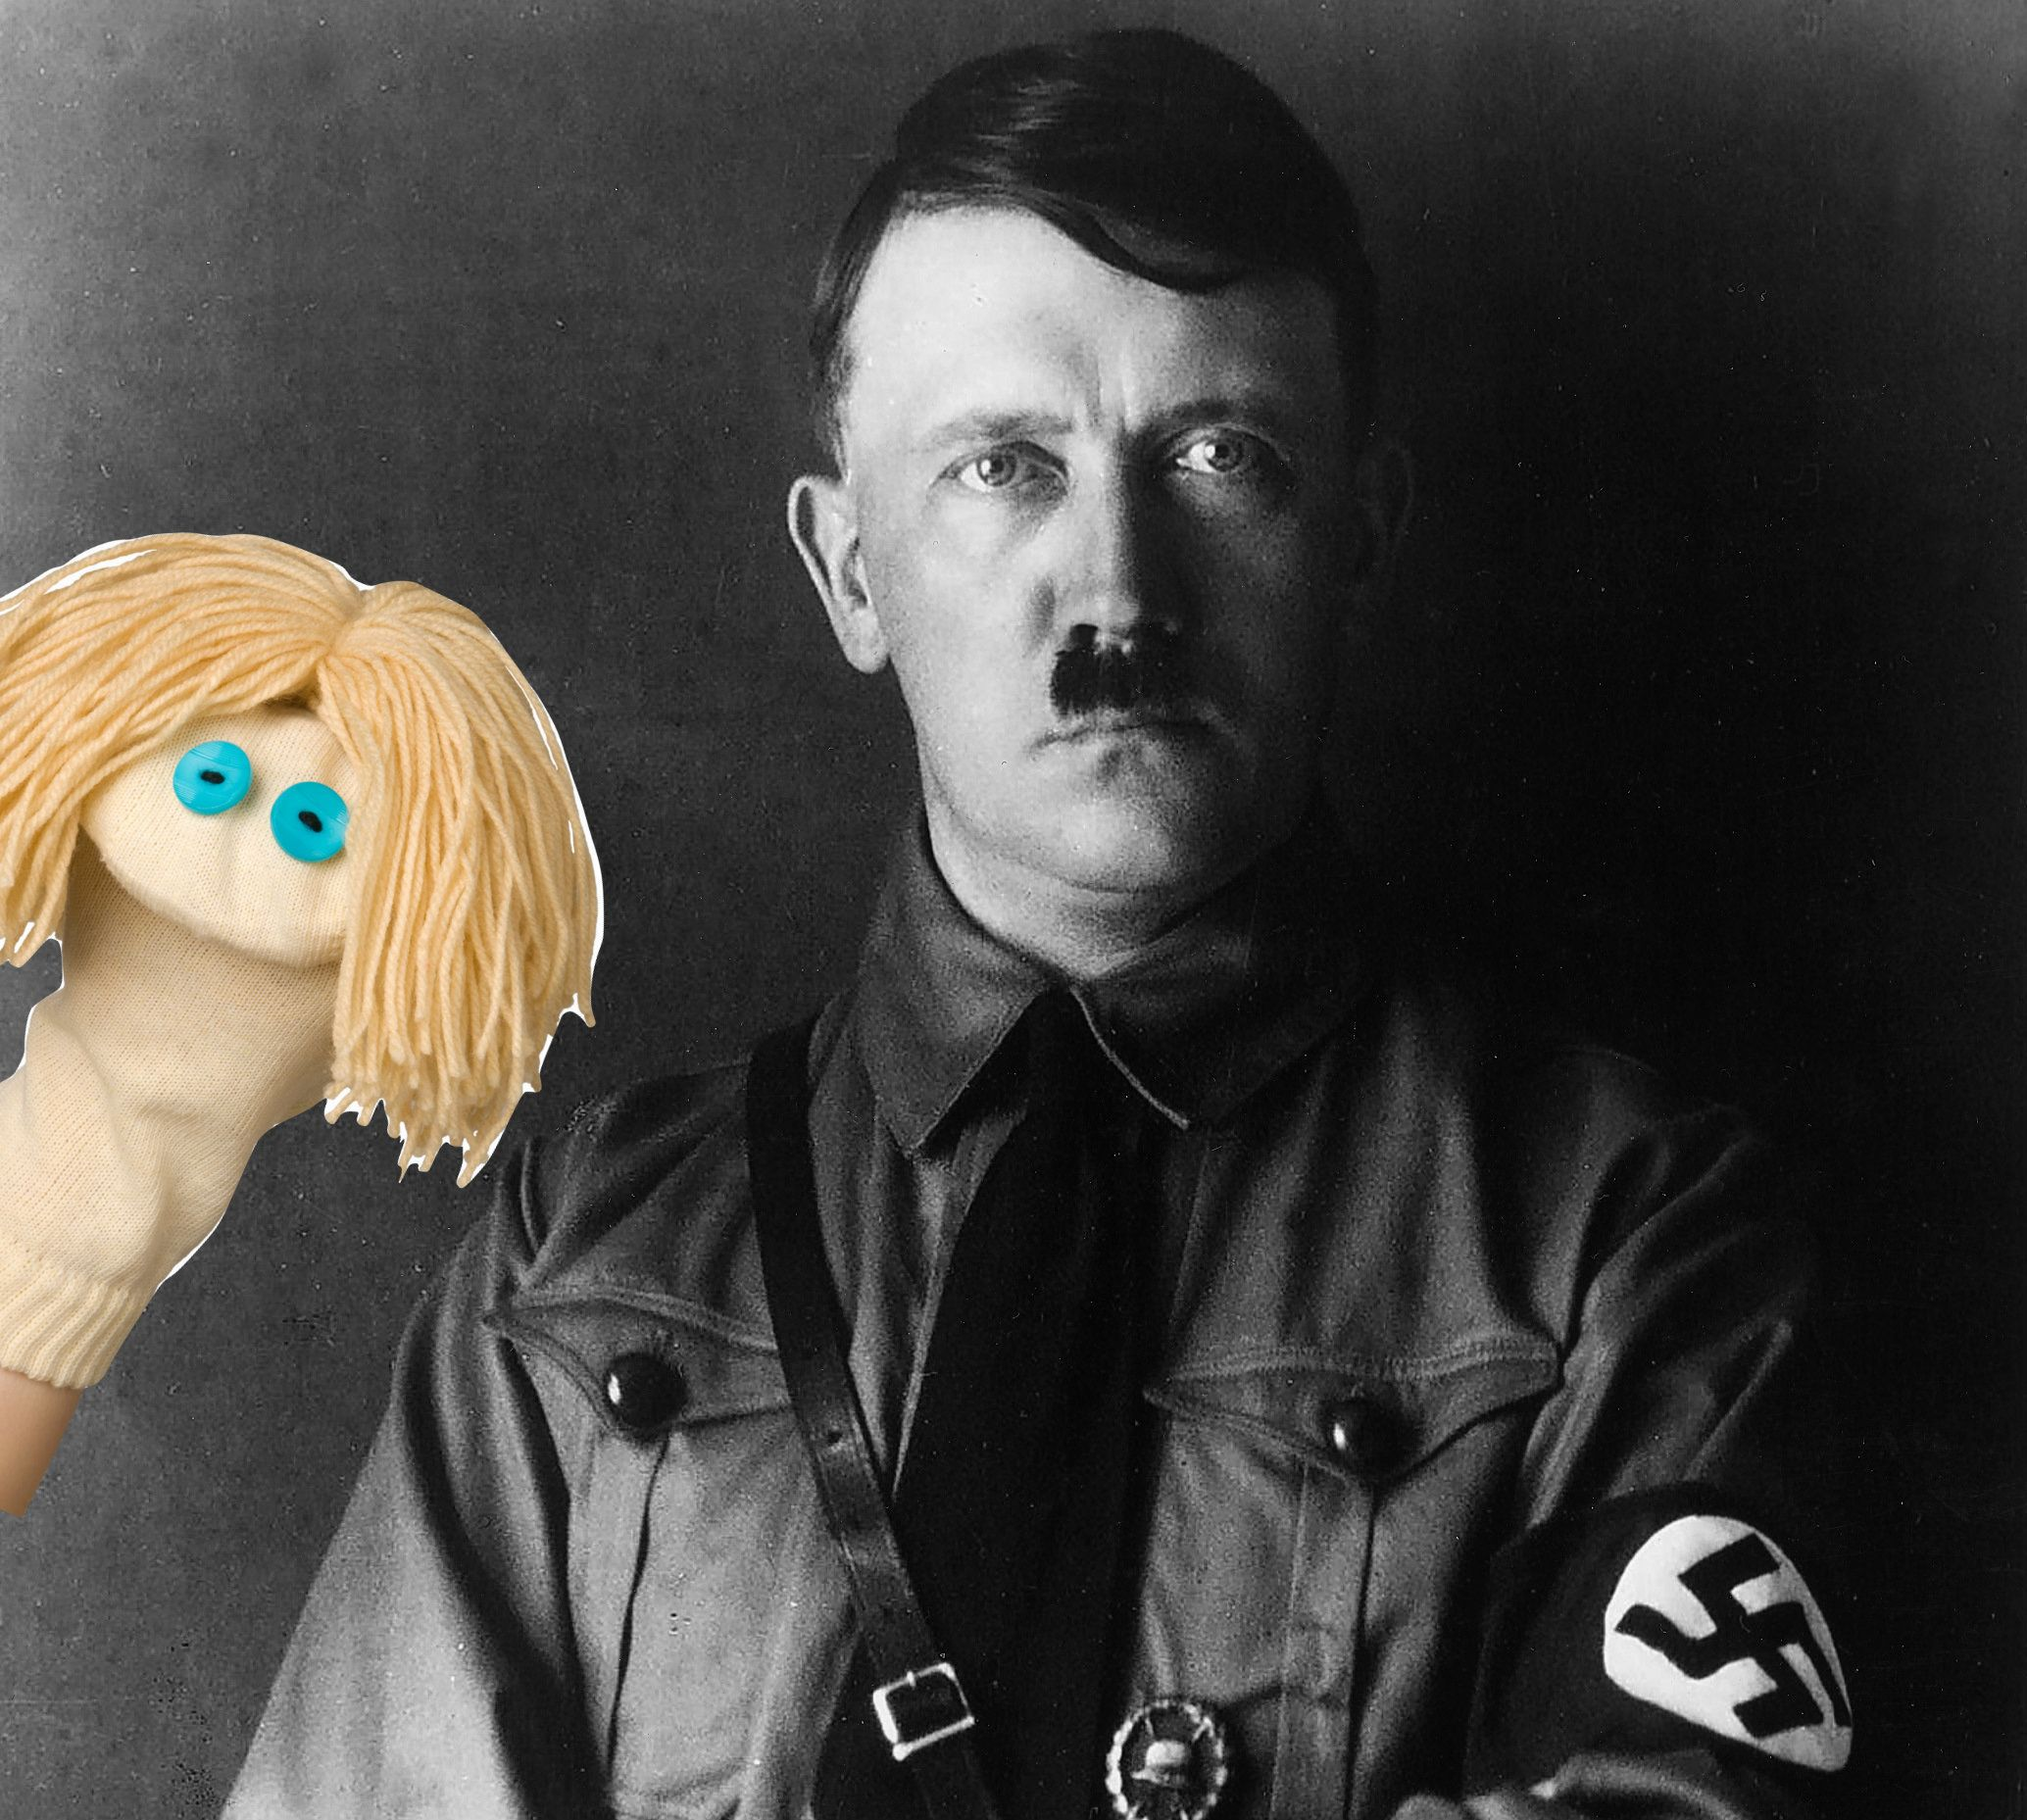 Hitler knew the effectiveness of a well-executed sockpuppet way before the internet even existed.